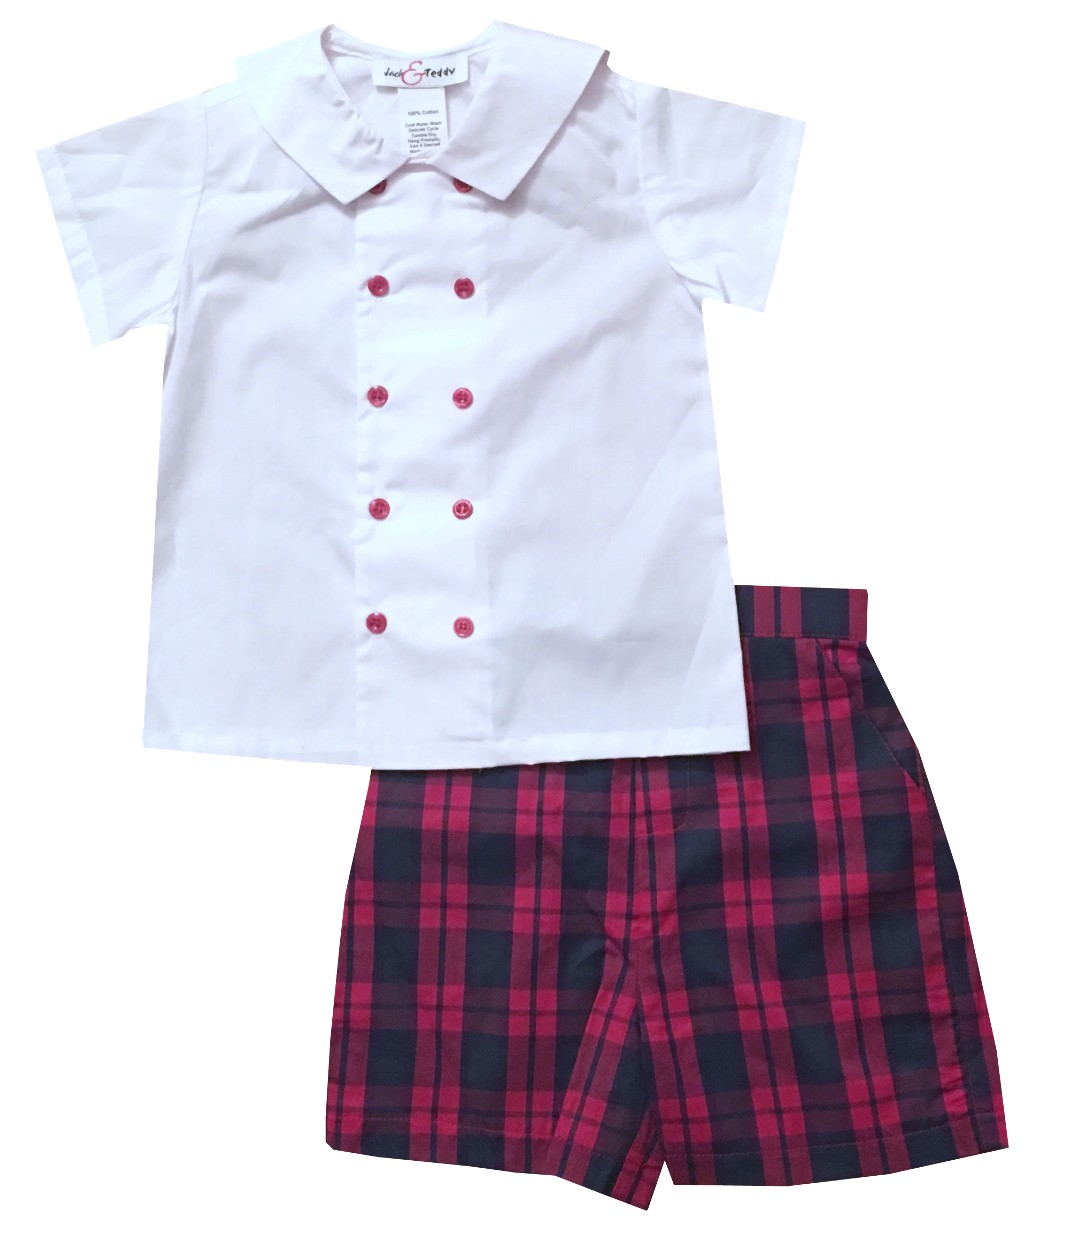 Teddy Plaid Jack Teddy Boy S White Double Breasted Blouse And Christmas